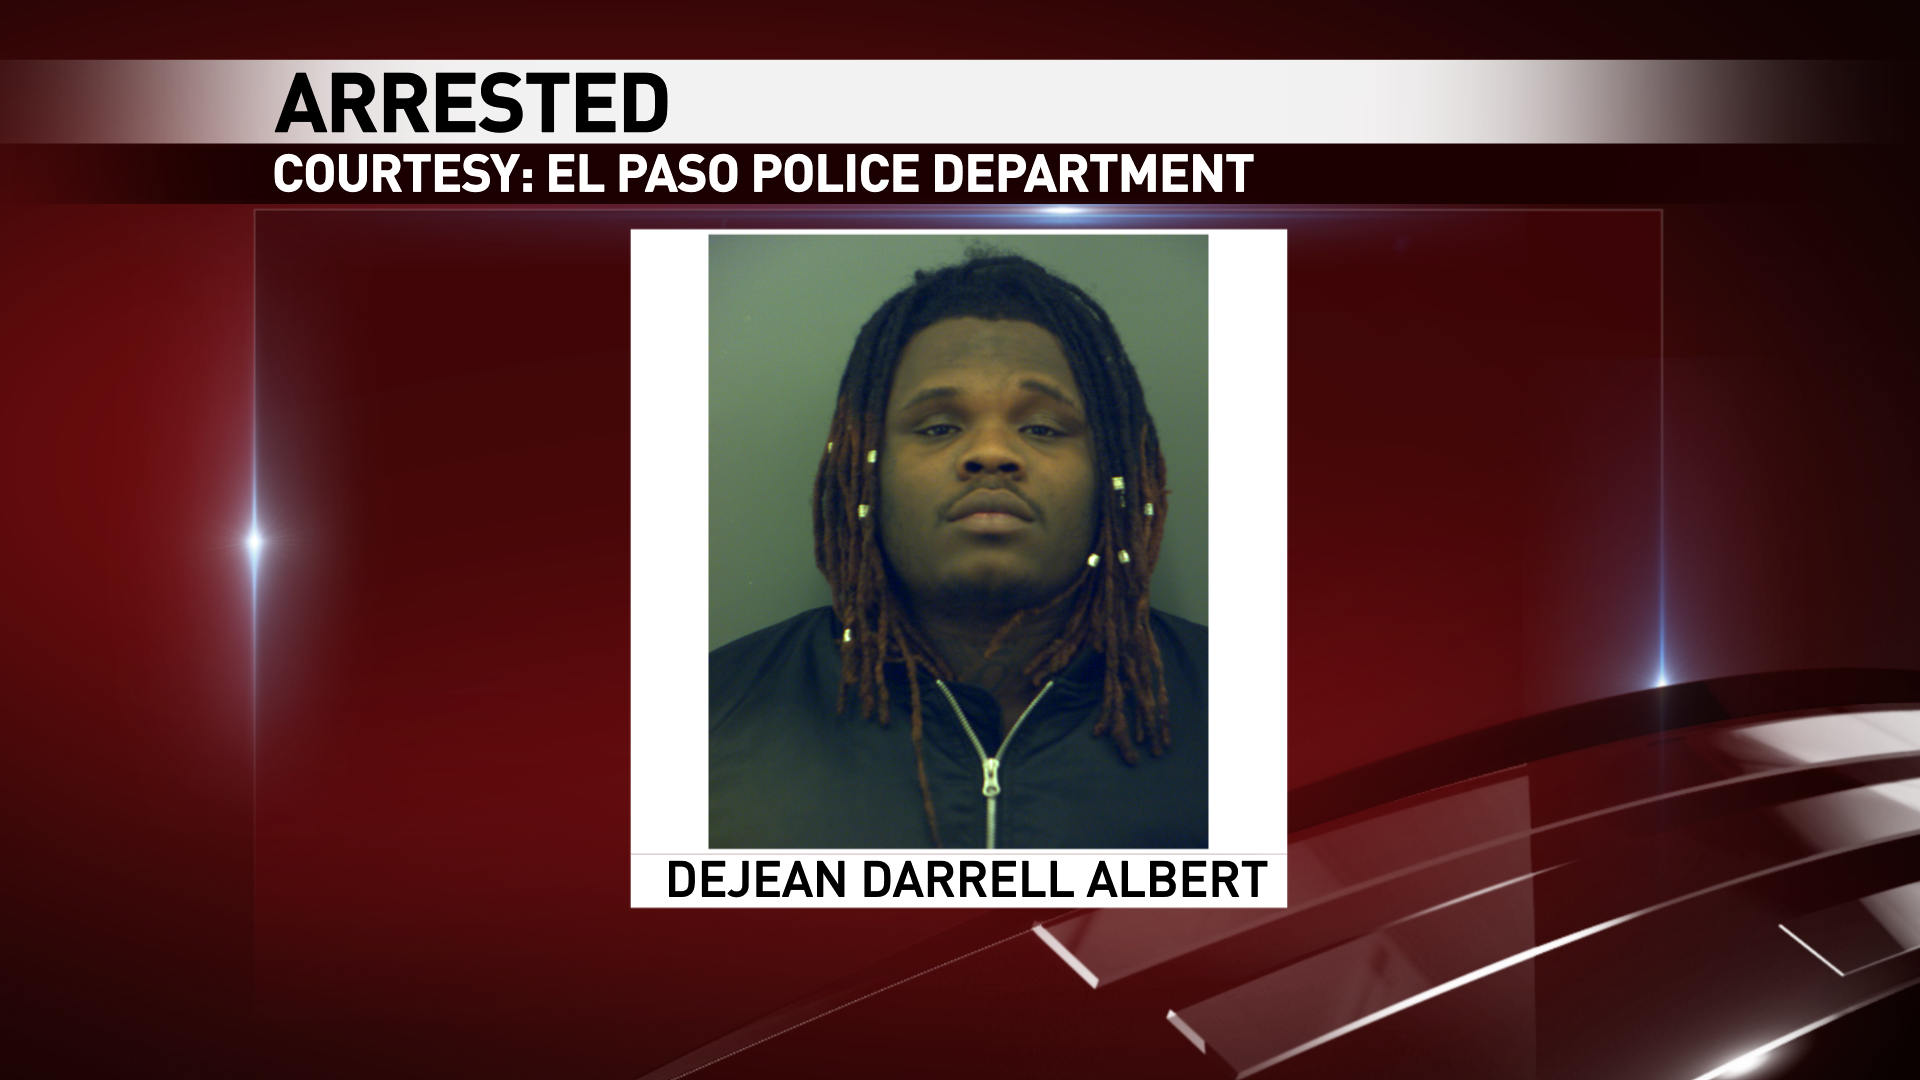 DejeanAlbert, 23, was arrested on a charge of possession of cocaine and a trafficwarrant.